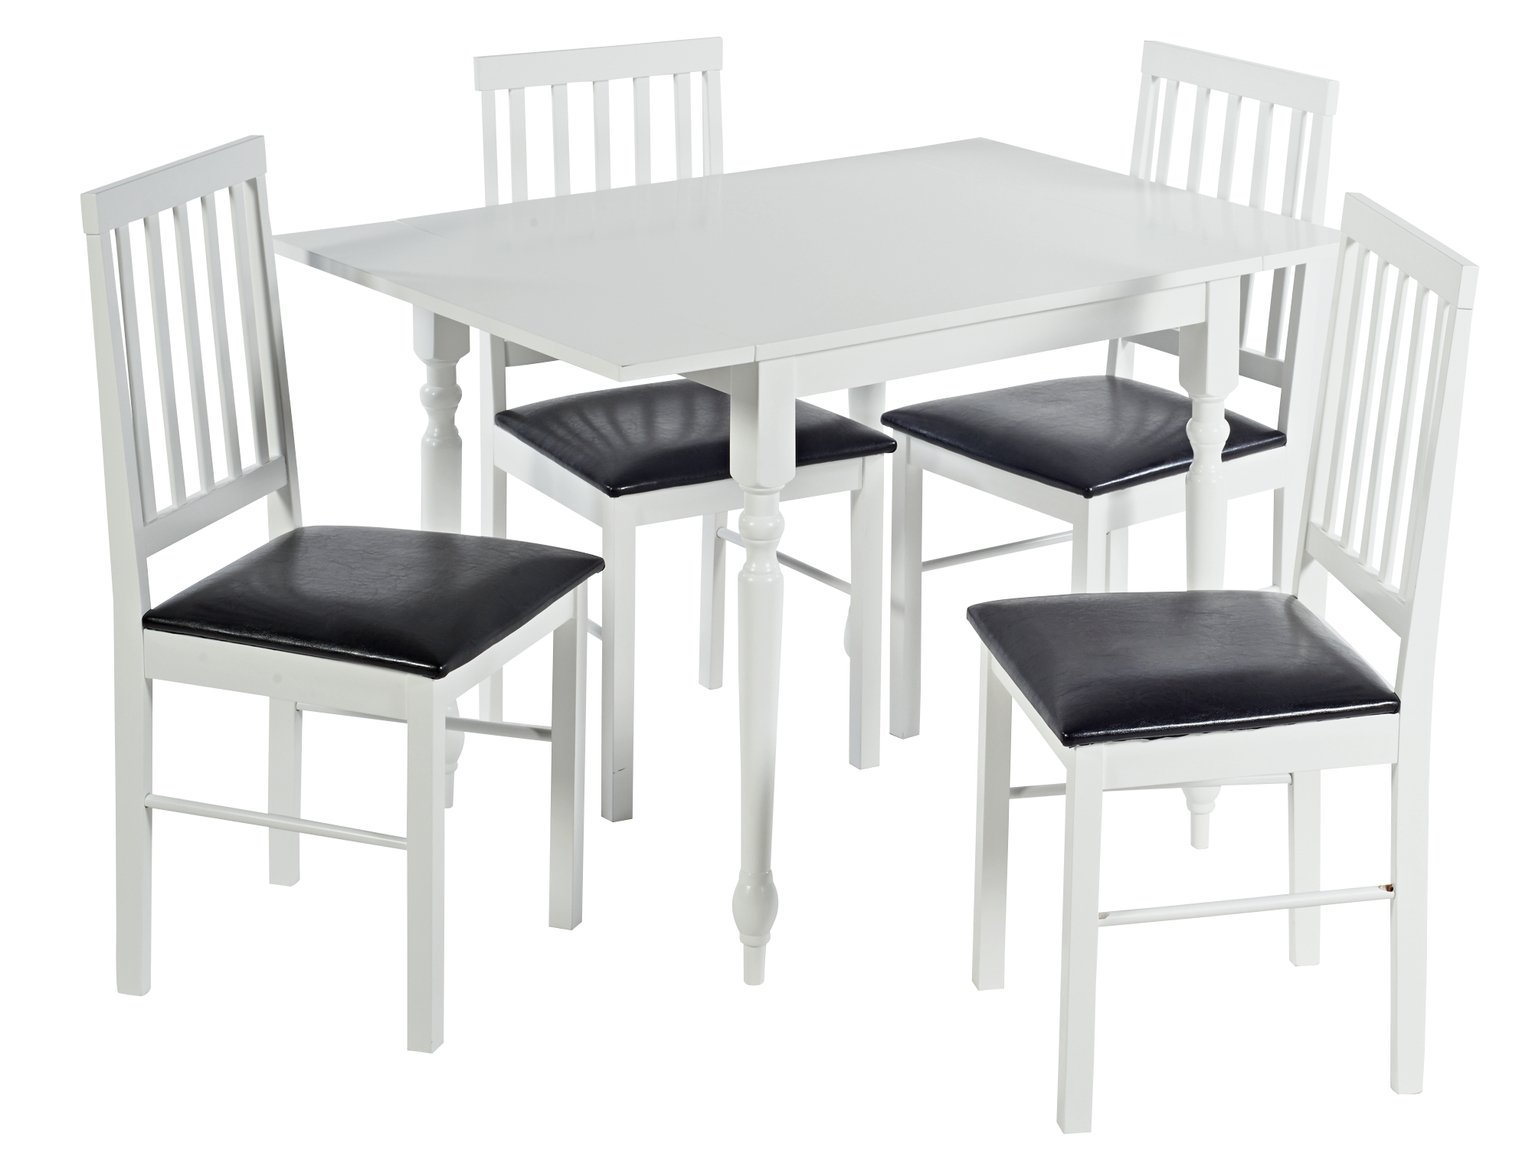 argos home orton spindle drop leaf table 4 chairs. Black Bedroom Furniture Sets. Home Design Ideas